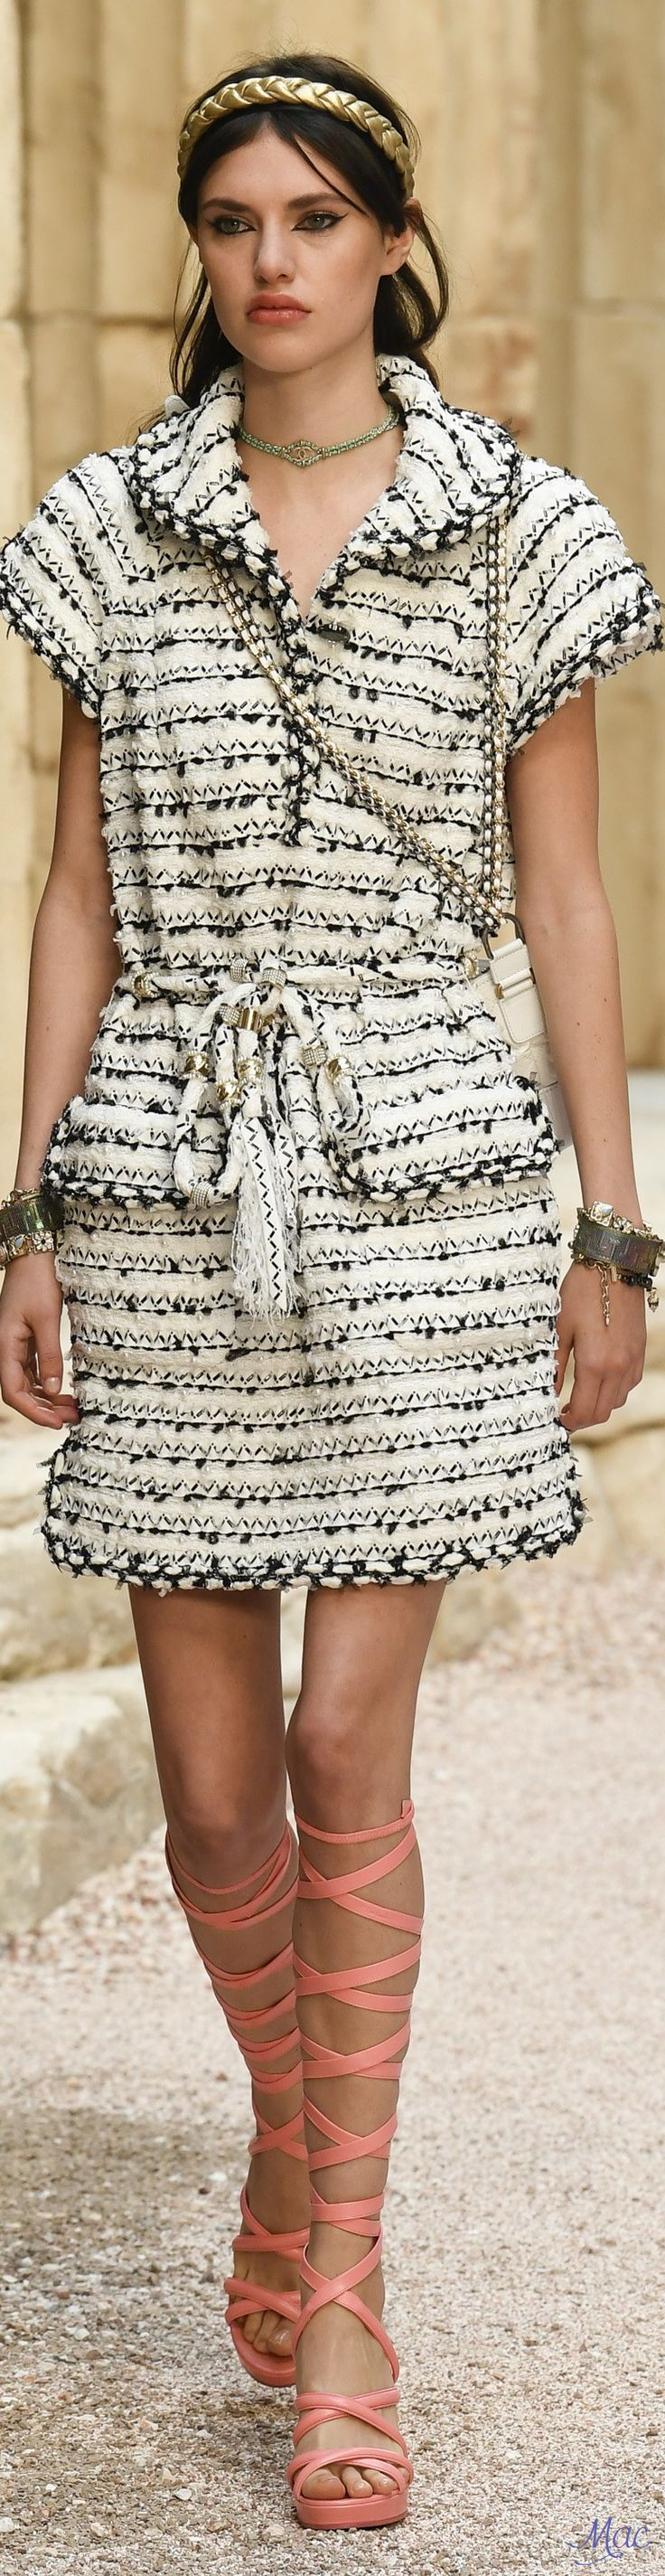 Resort 2018 Chanel